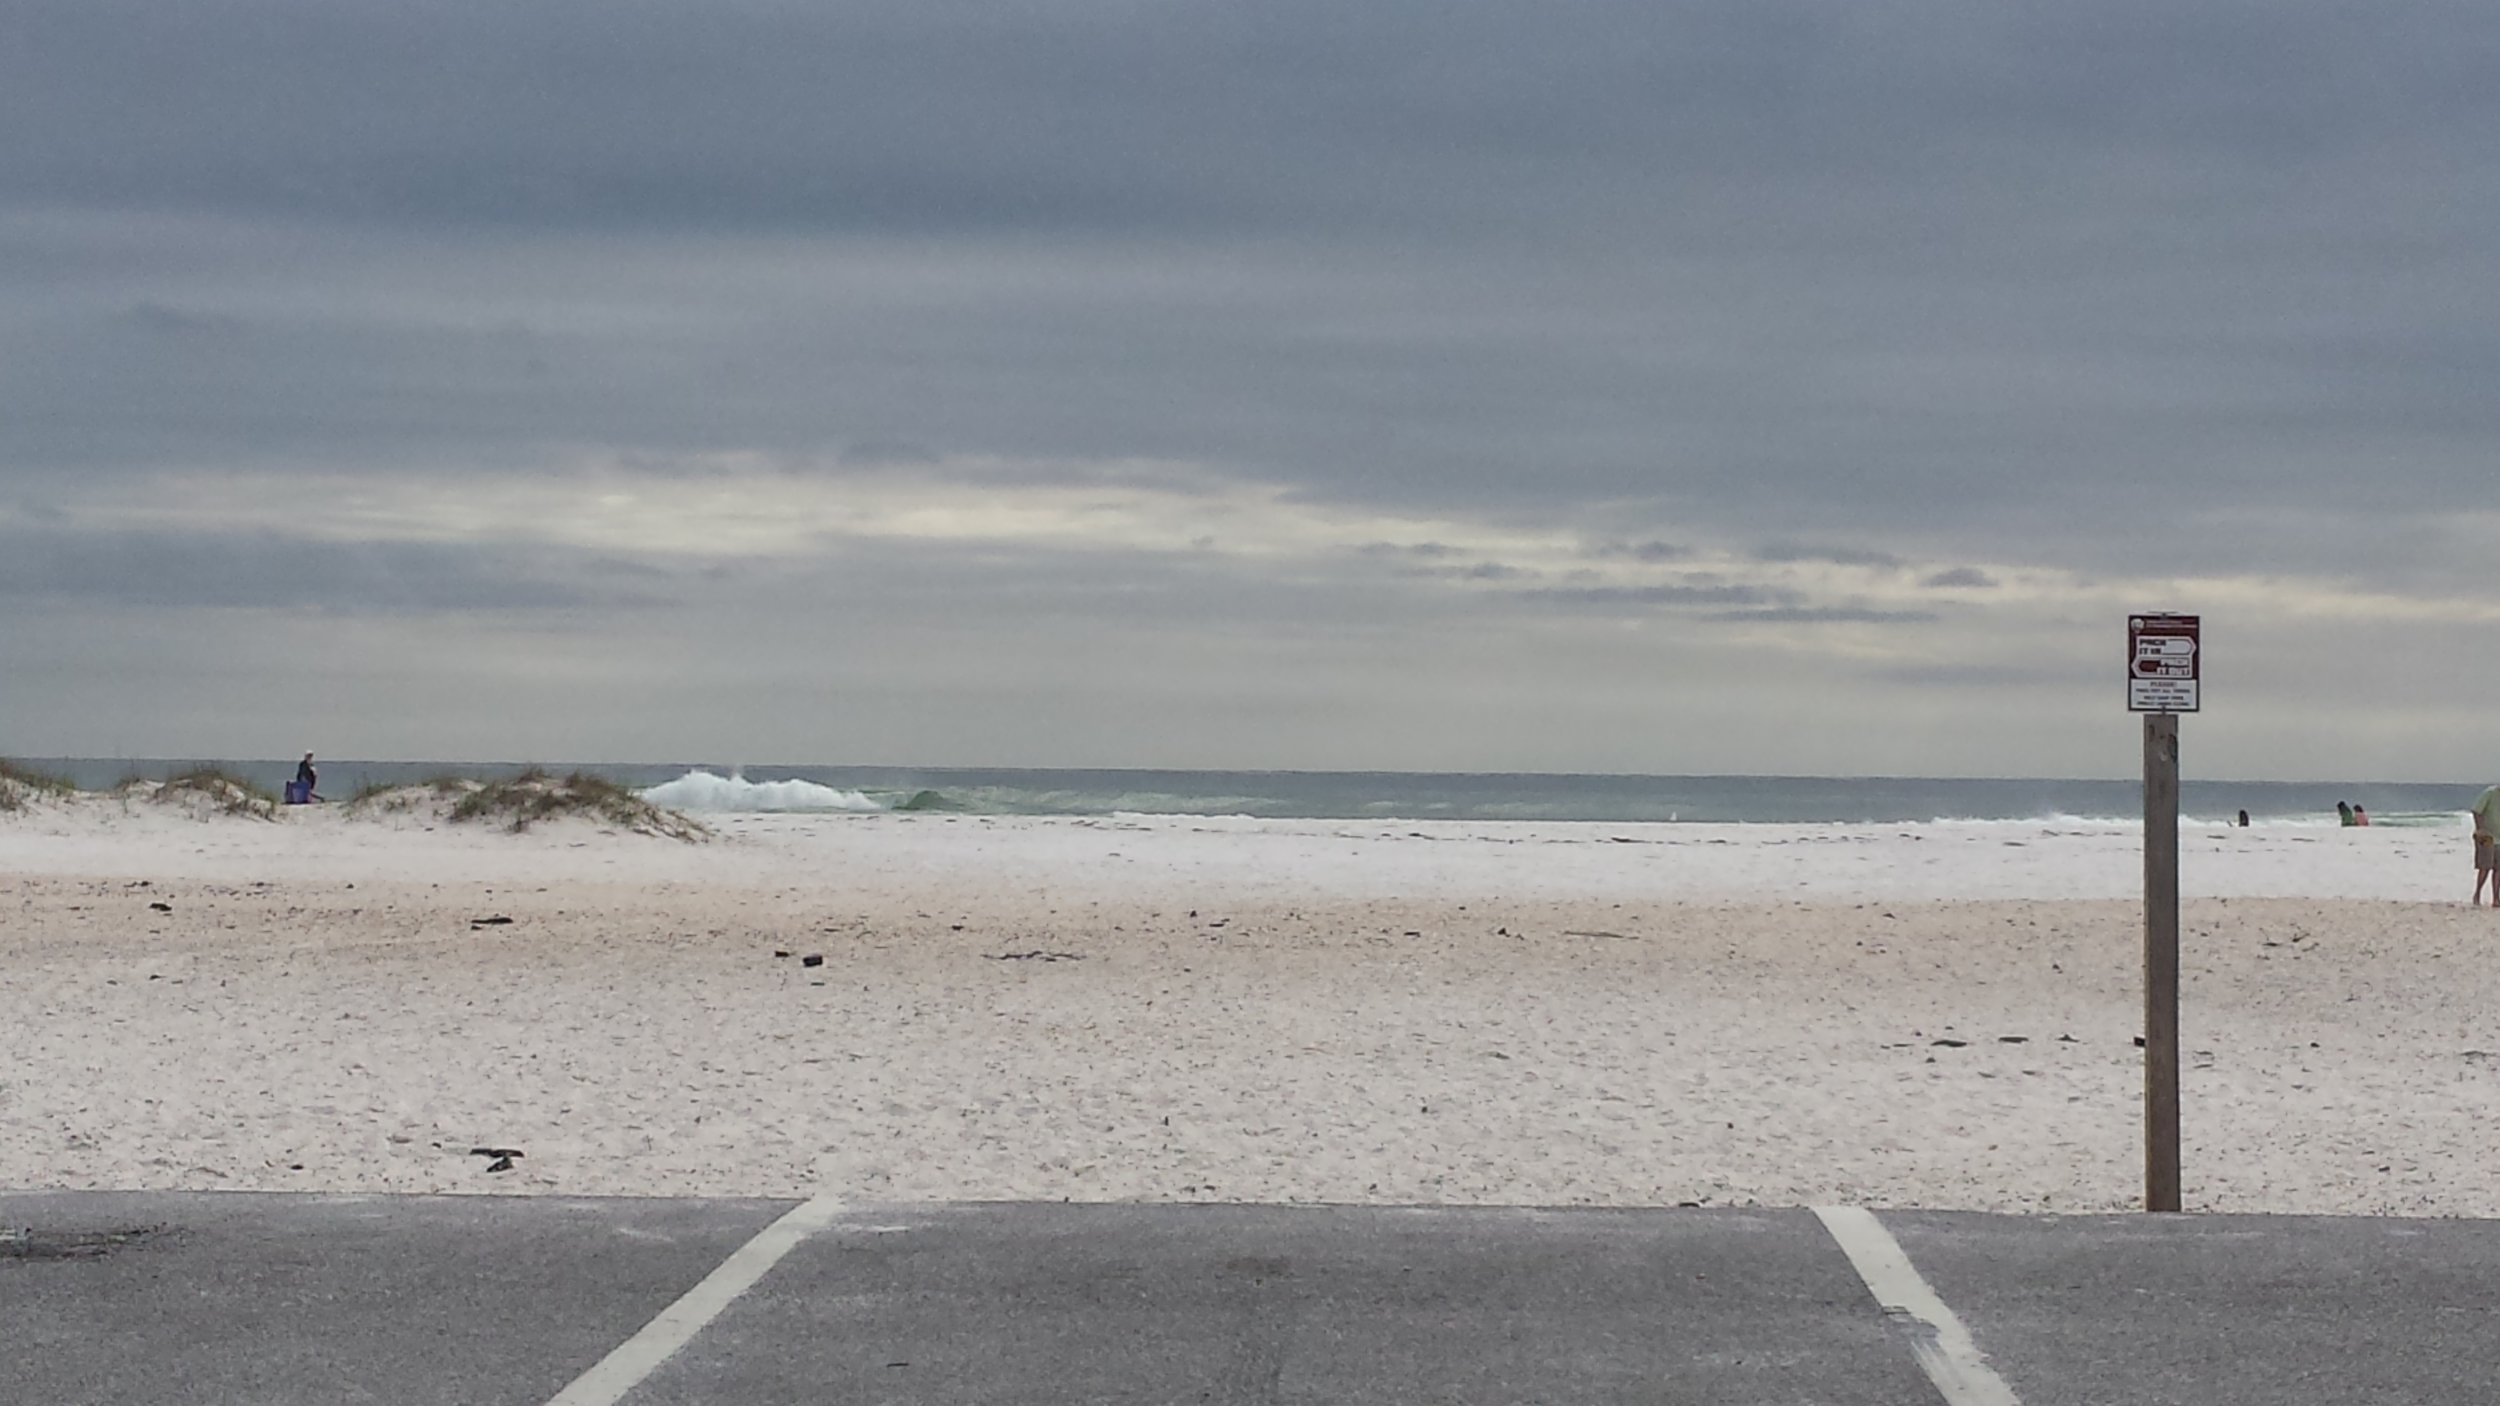 Parking spot right on the beach at Gulf Islands National Seashore